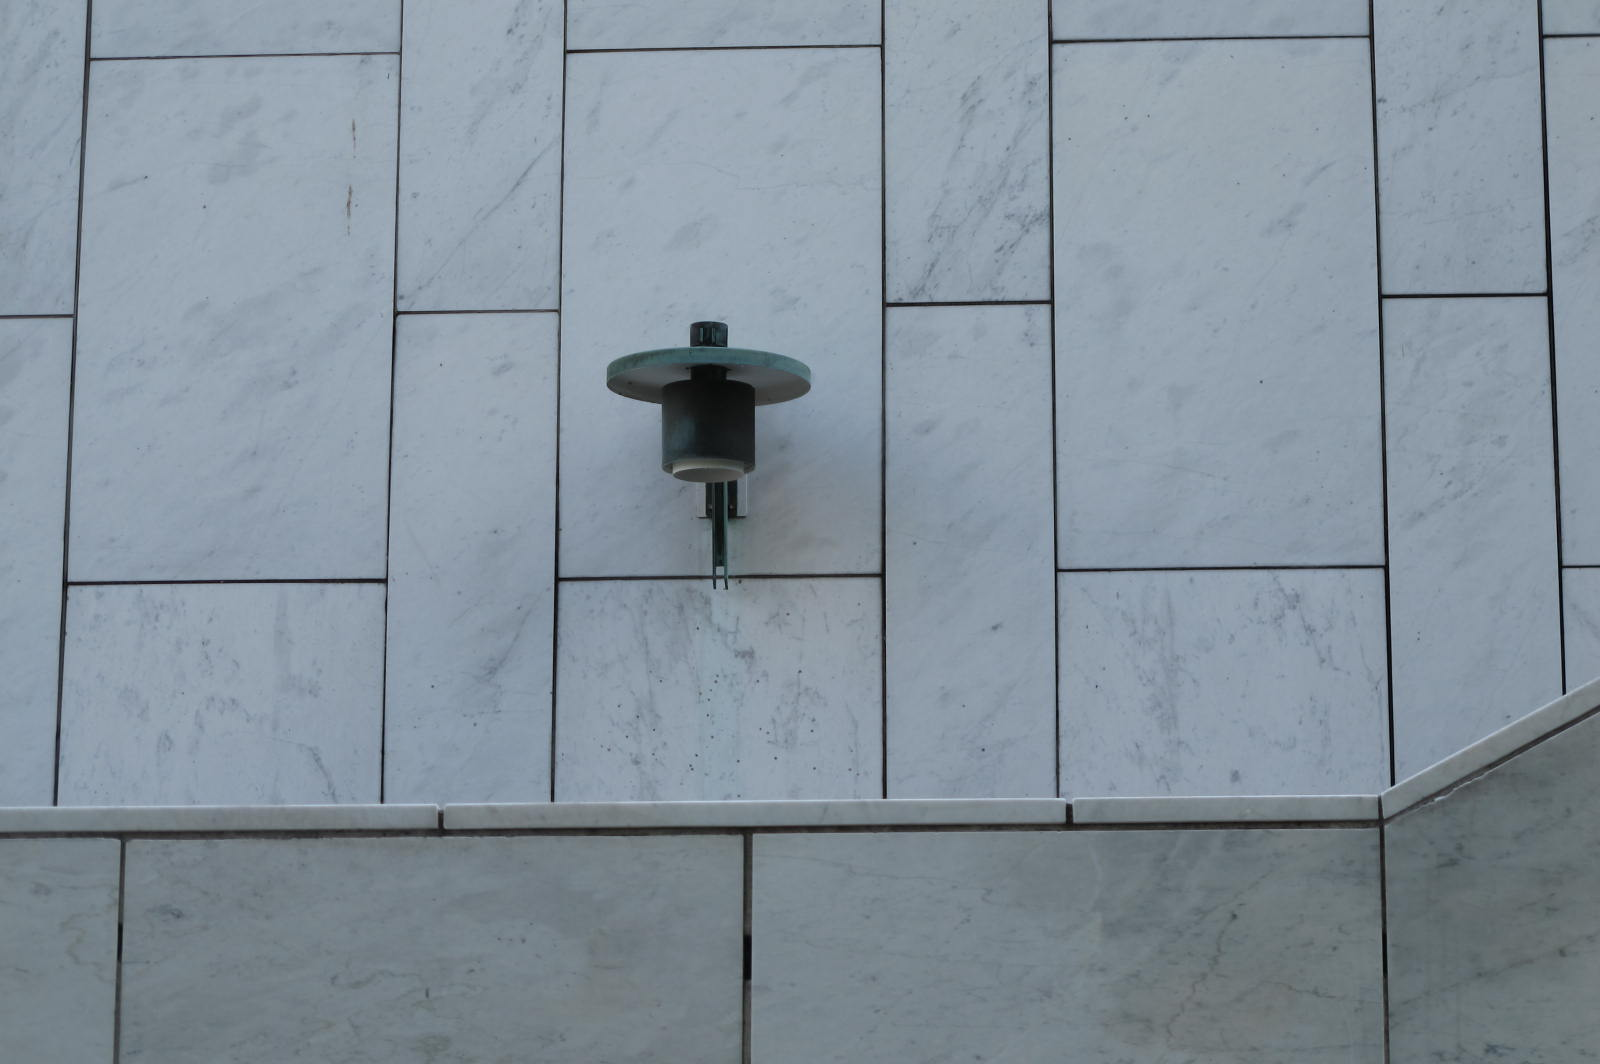 Lamp detail / Finlandia Hall / 12 July 2015